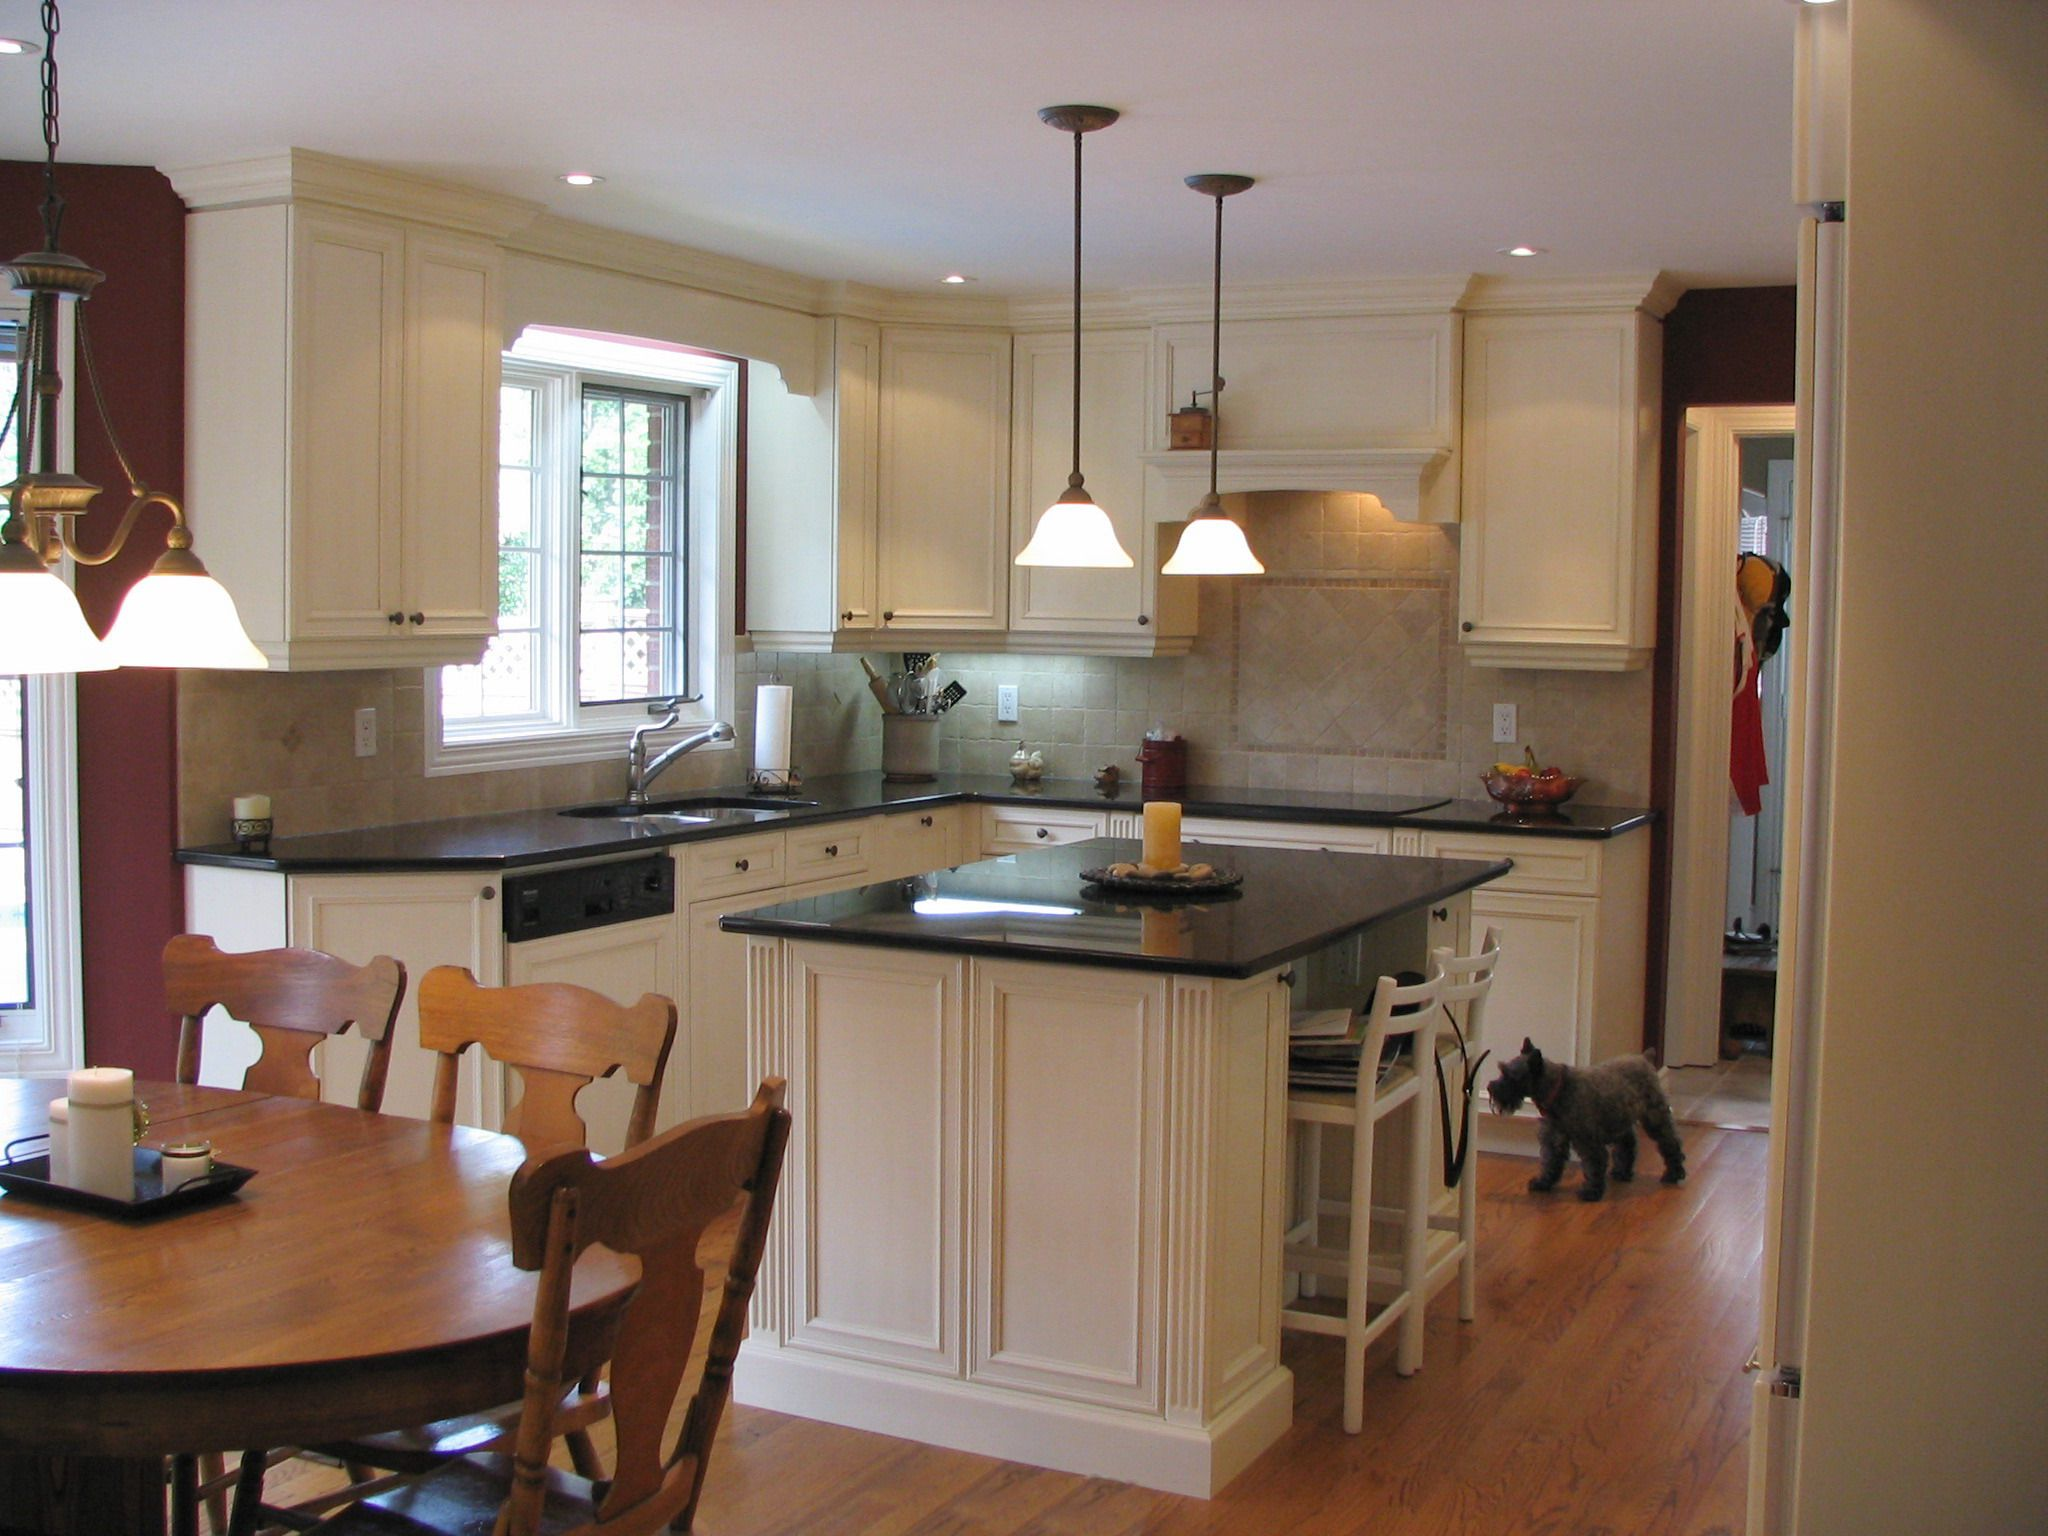 Kitchen craft chatham maple cabinets millstone brushed white lacquer finish cambrian black countertops